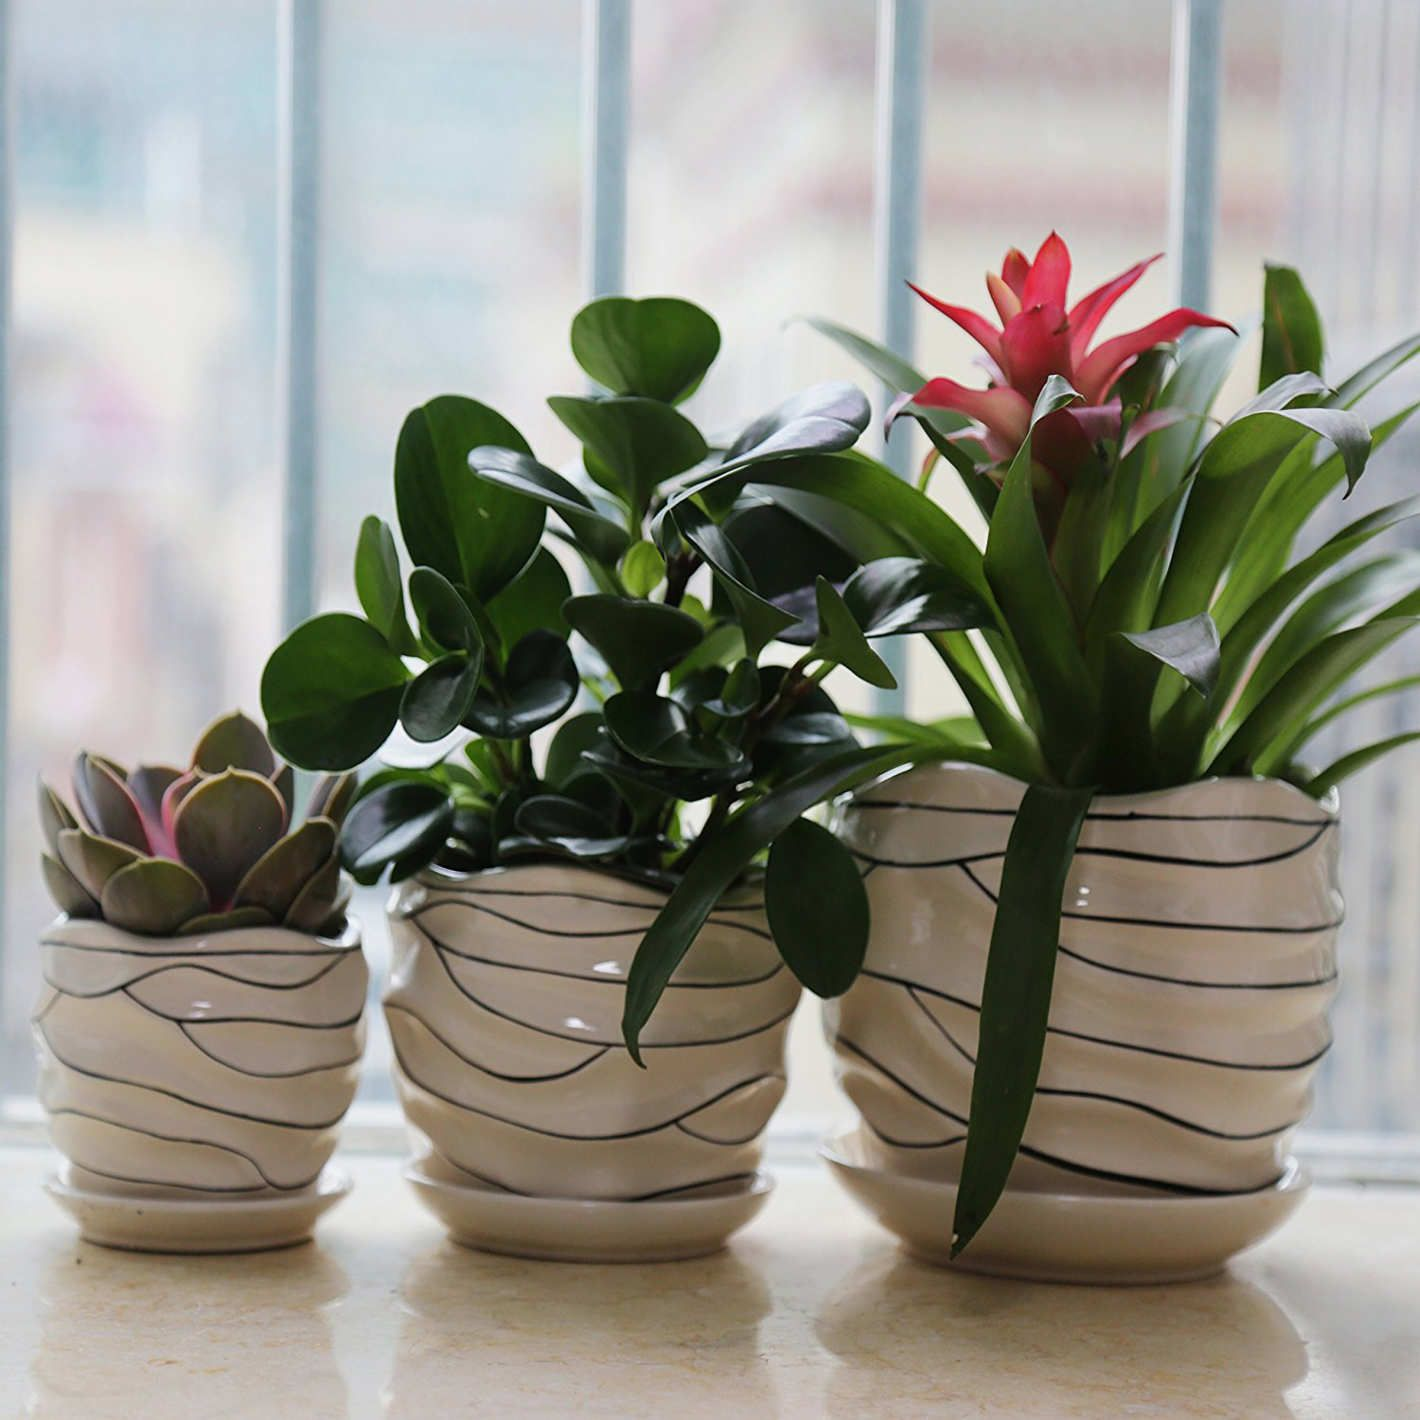 The Best Pots And Planters On Amazon Ceramic Plant Pots Indoor Plant Pots Plants